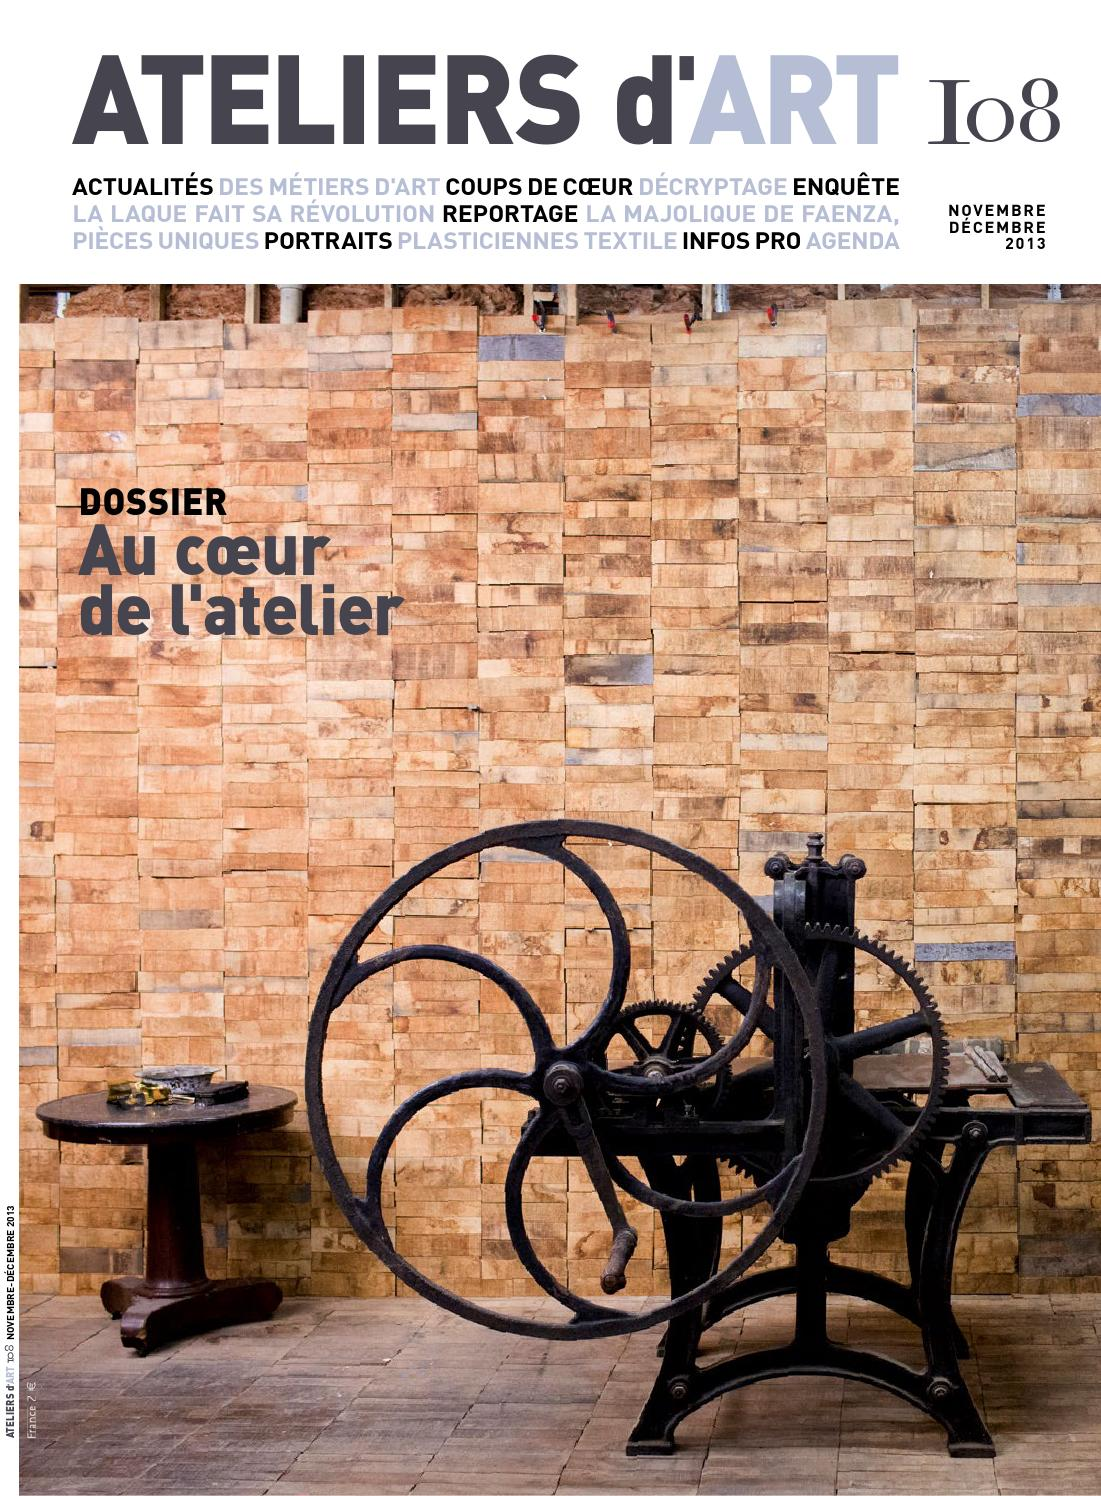 Issuu magazine ateliers d 39 art 108 by ateliers d 39 art de france - Ateliers d arts de france ...